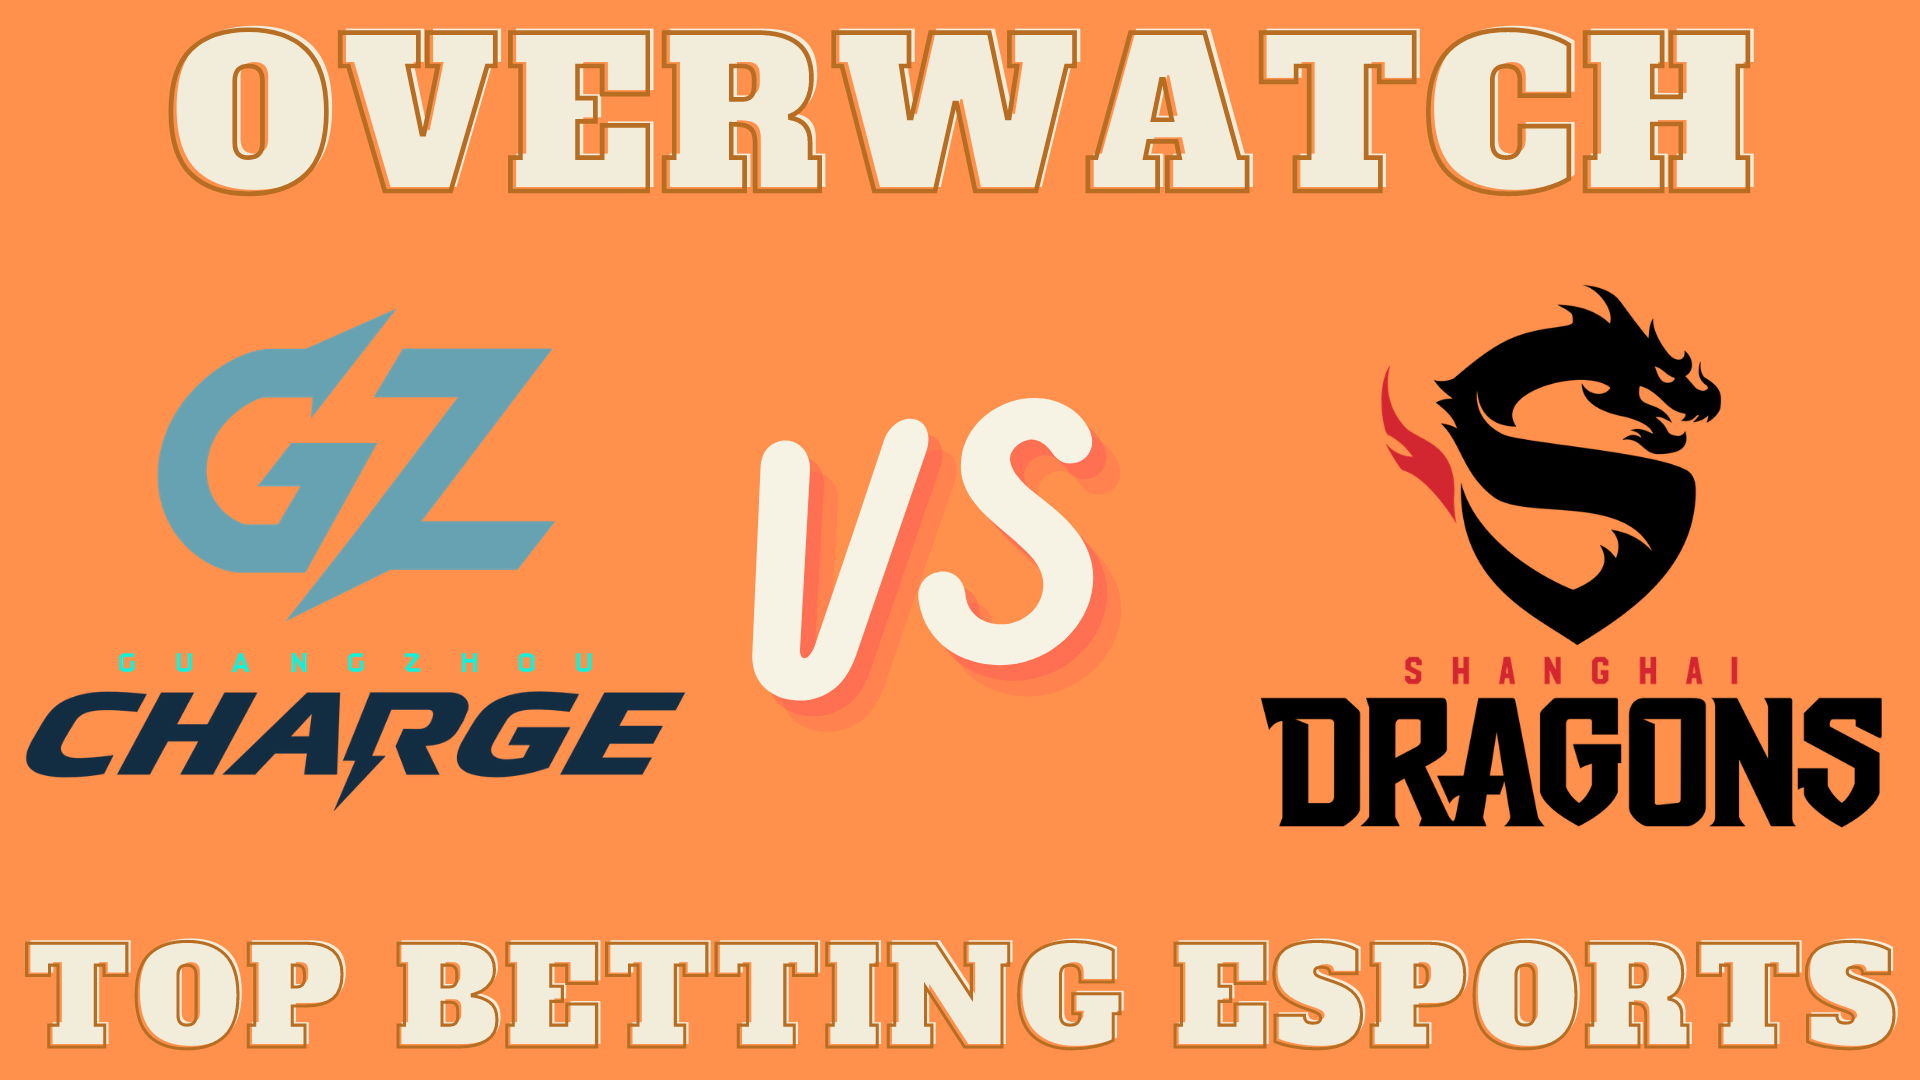 Overwatch League Guangzhou Charge vs Shanghai Dragons betting prediction